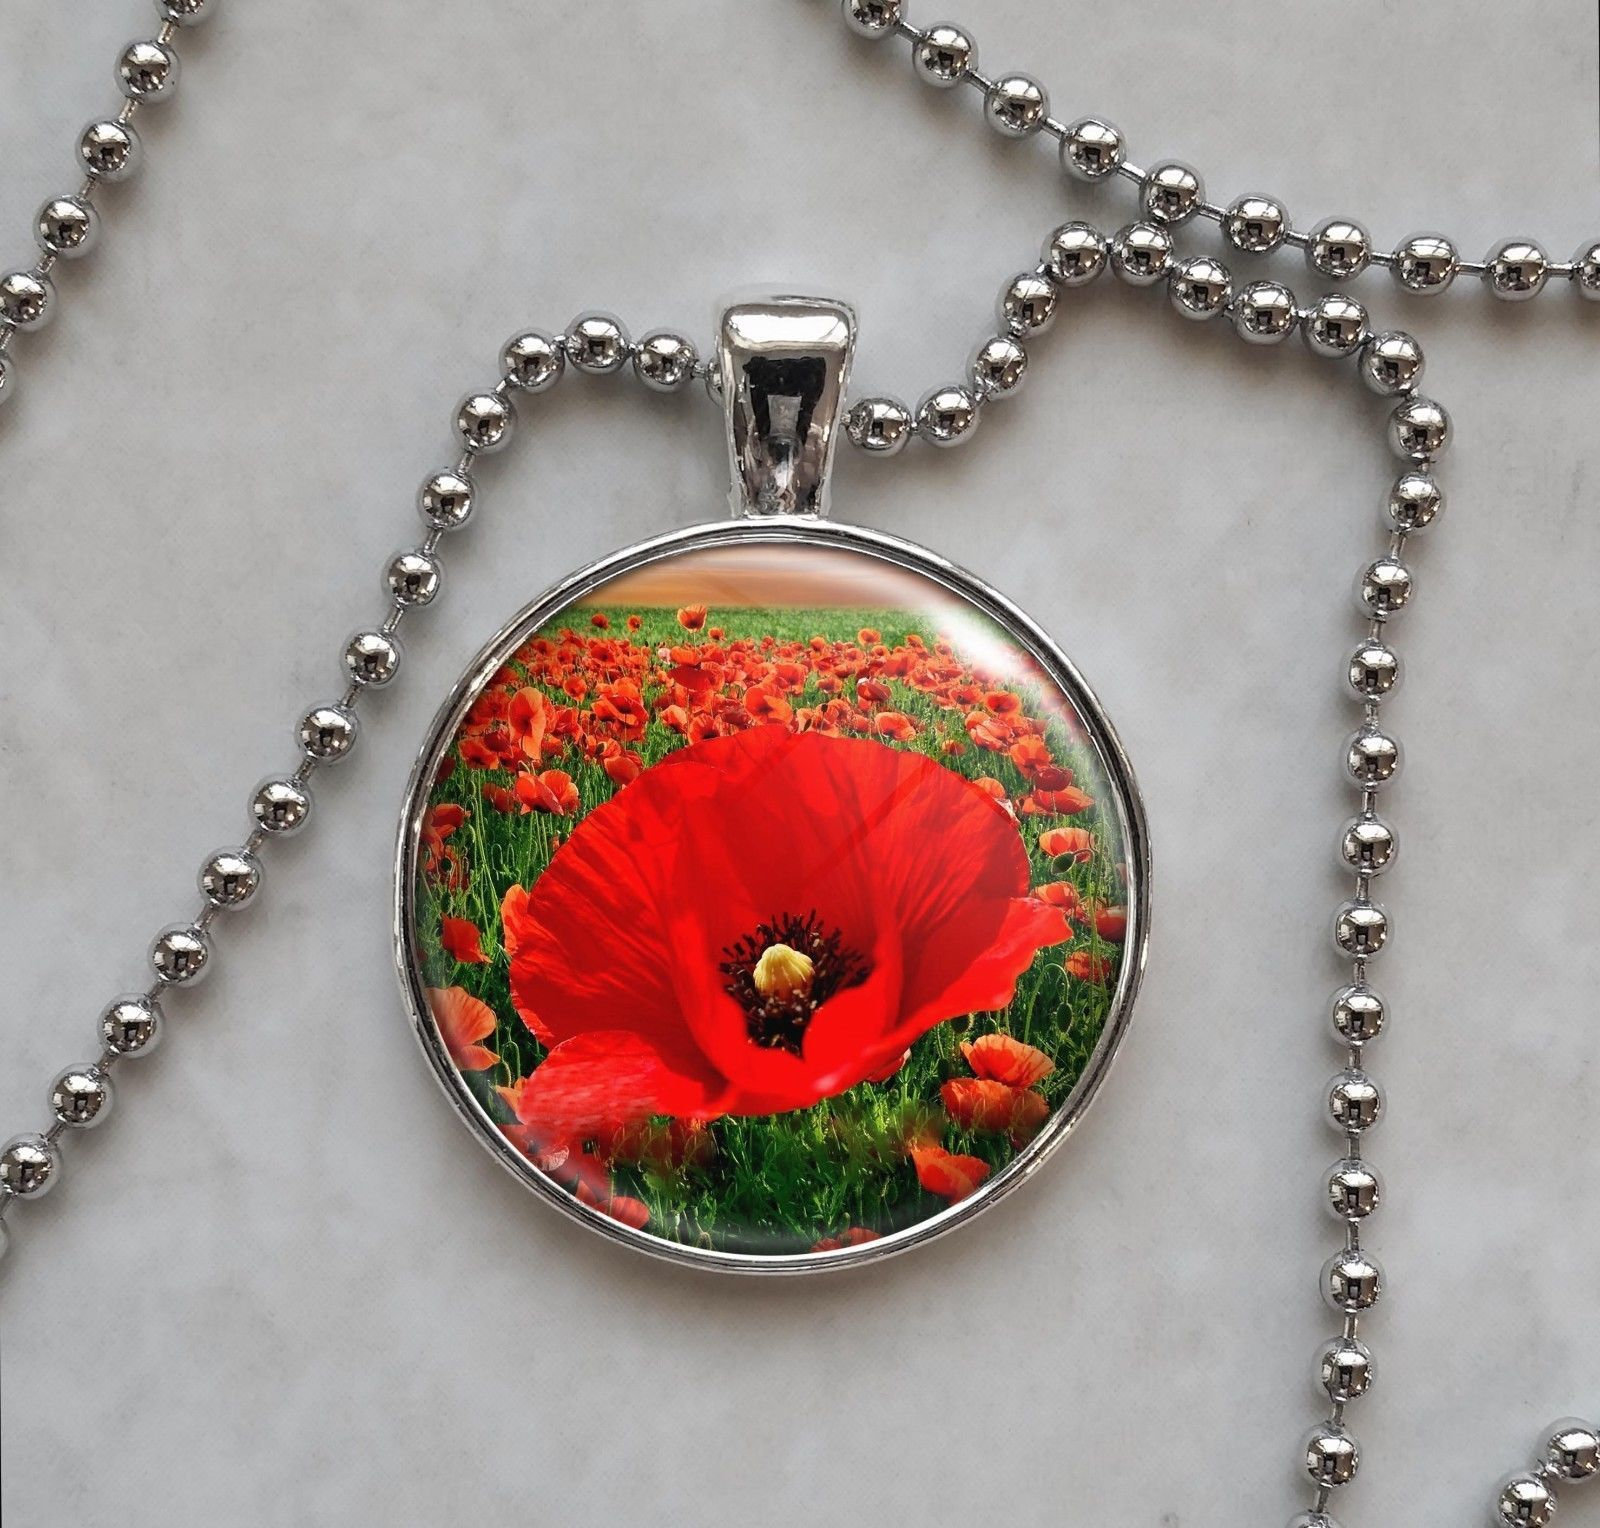 Primary image for Field Of Poppy Red Flowers Pendant Necklace